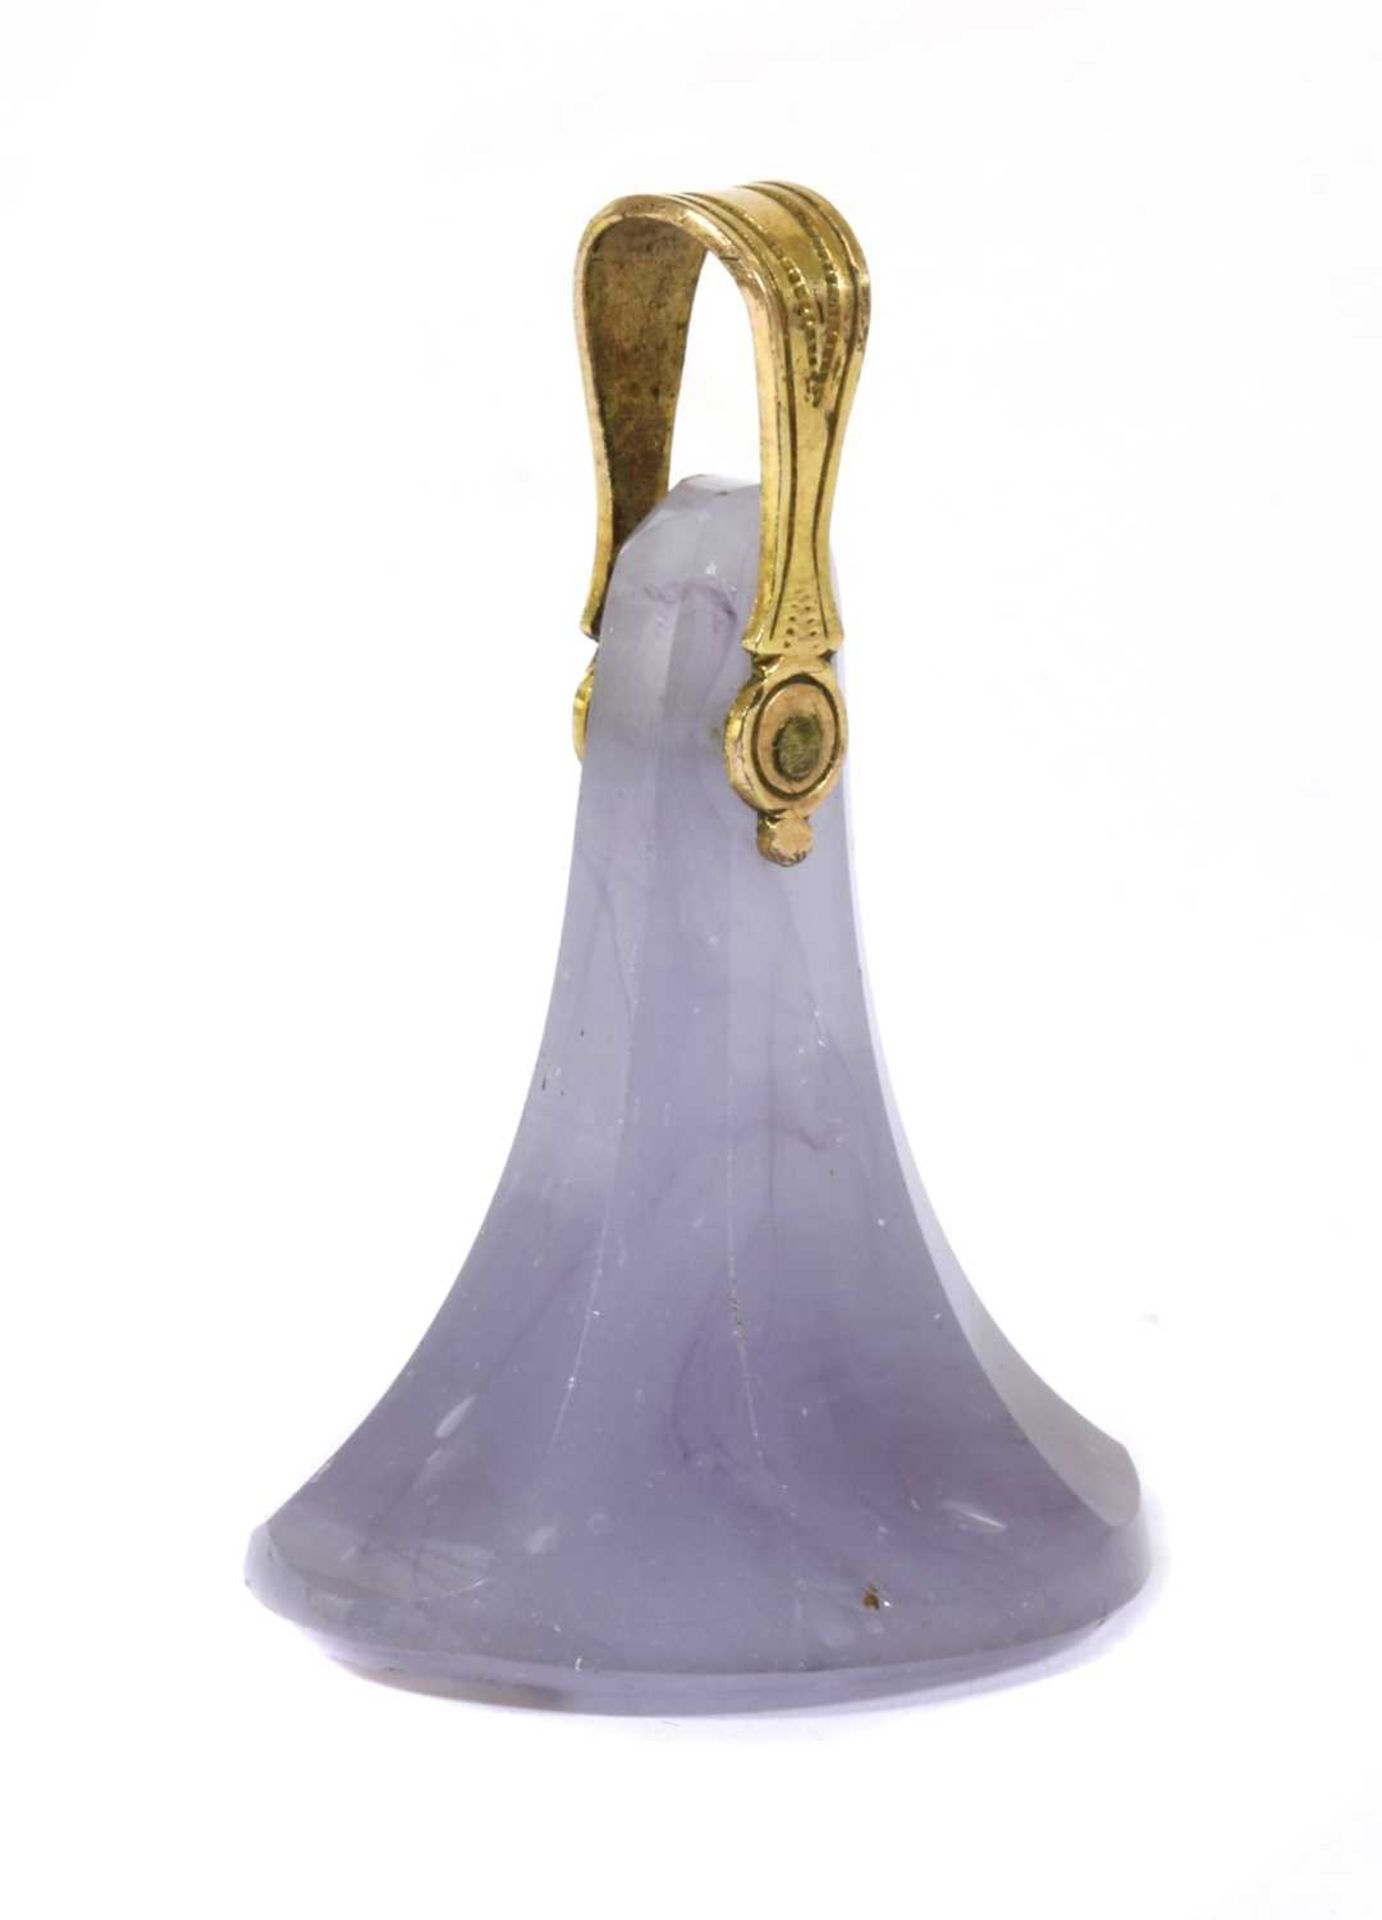 A Continental glass seal fob, - Image 2 of 2